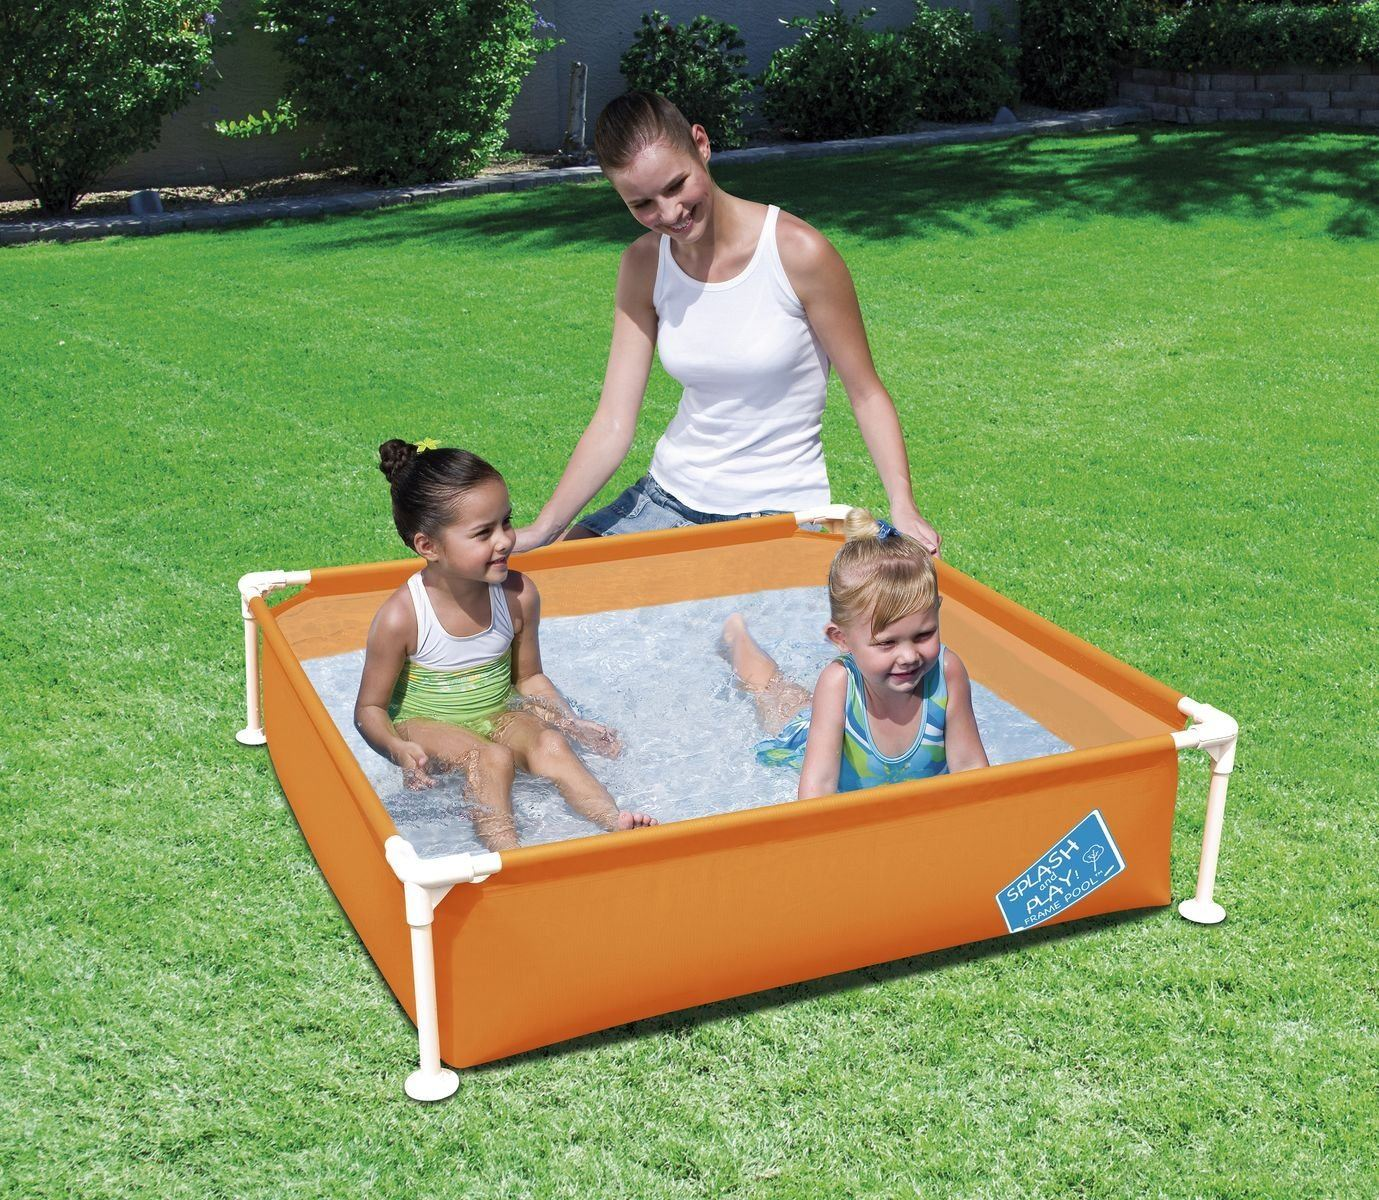 My First Frame Family Garden Outdoor Paddling Swimming